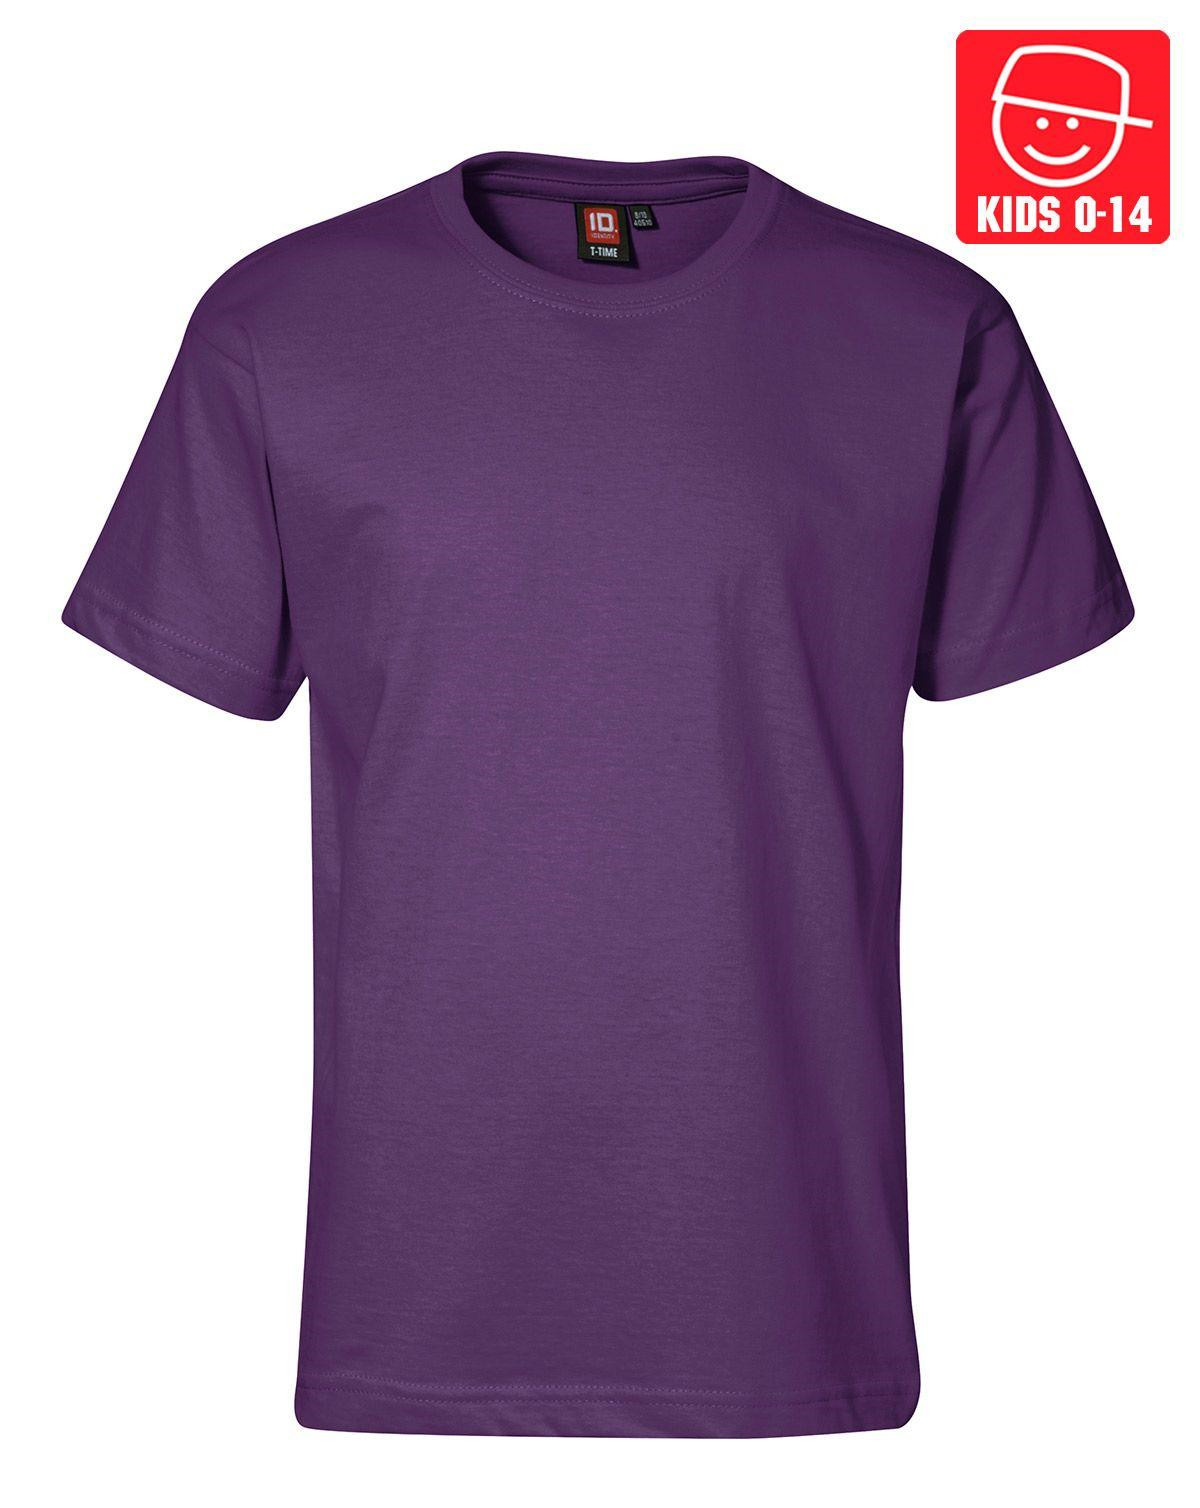 Image of   ID T-TIME T-shirt (Lilla, 158)